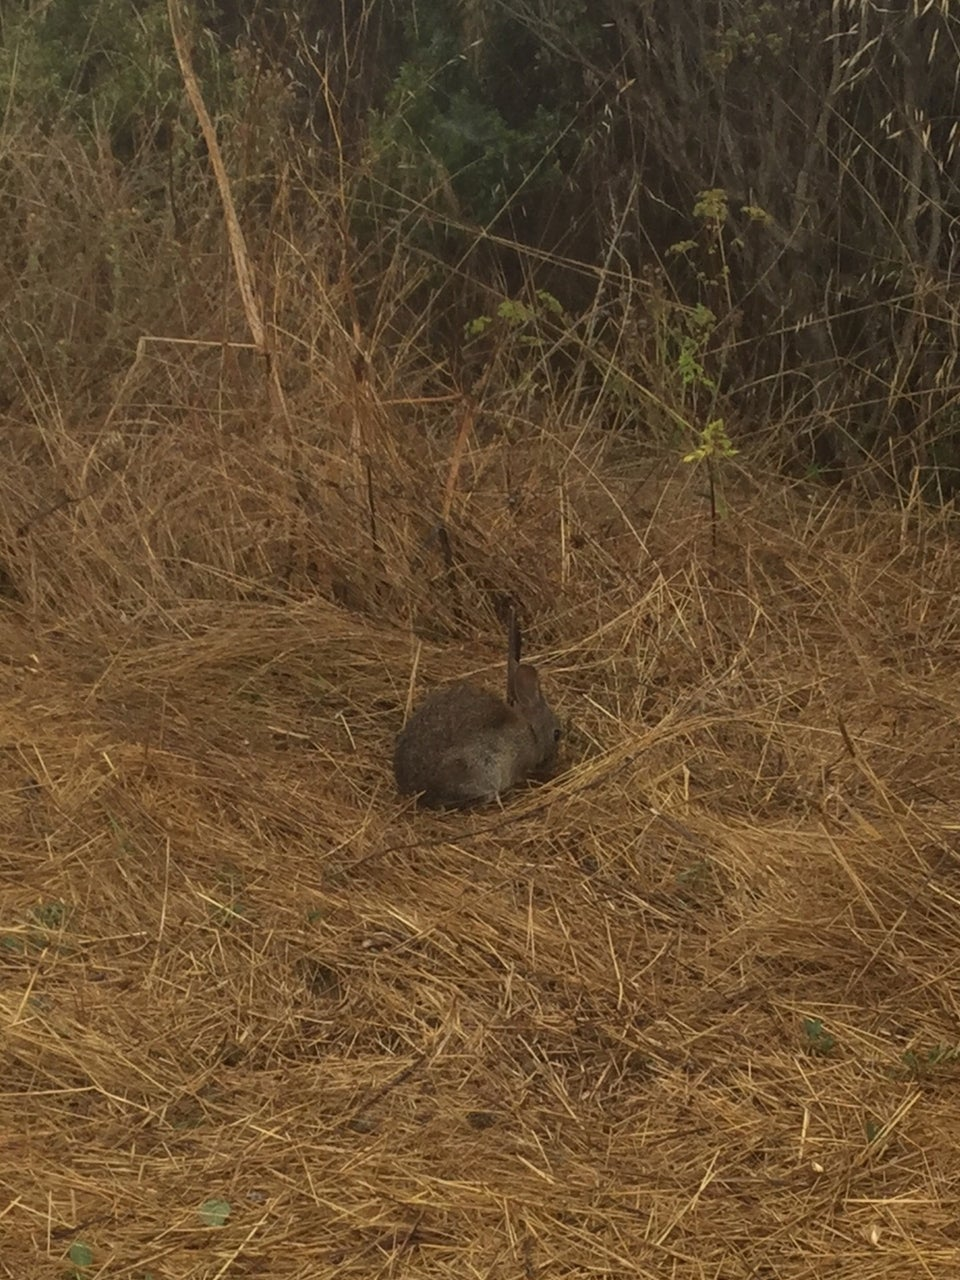 Curious bunny sitting in straw next to bushes on the side of Coastal Fire road on the downhill to Muir Beach.